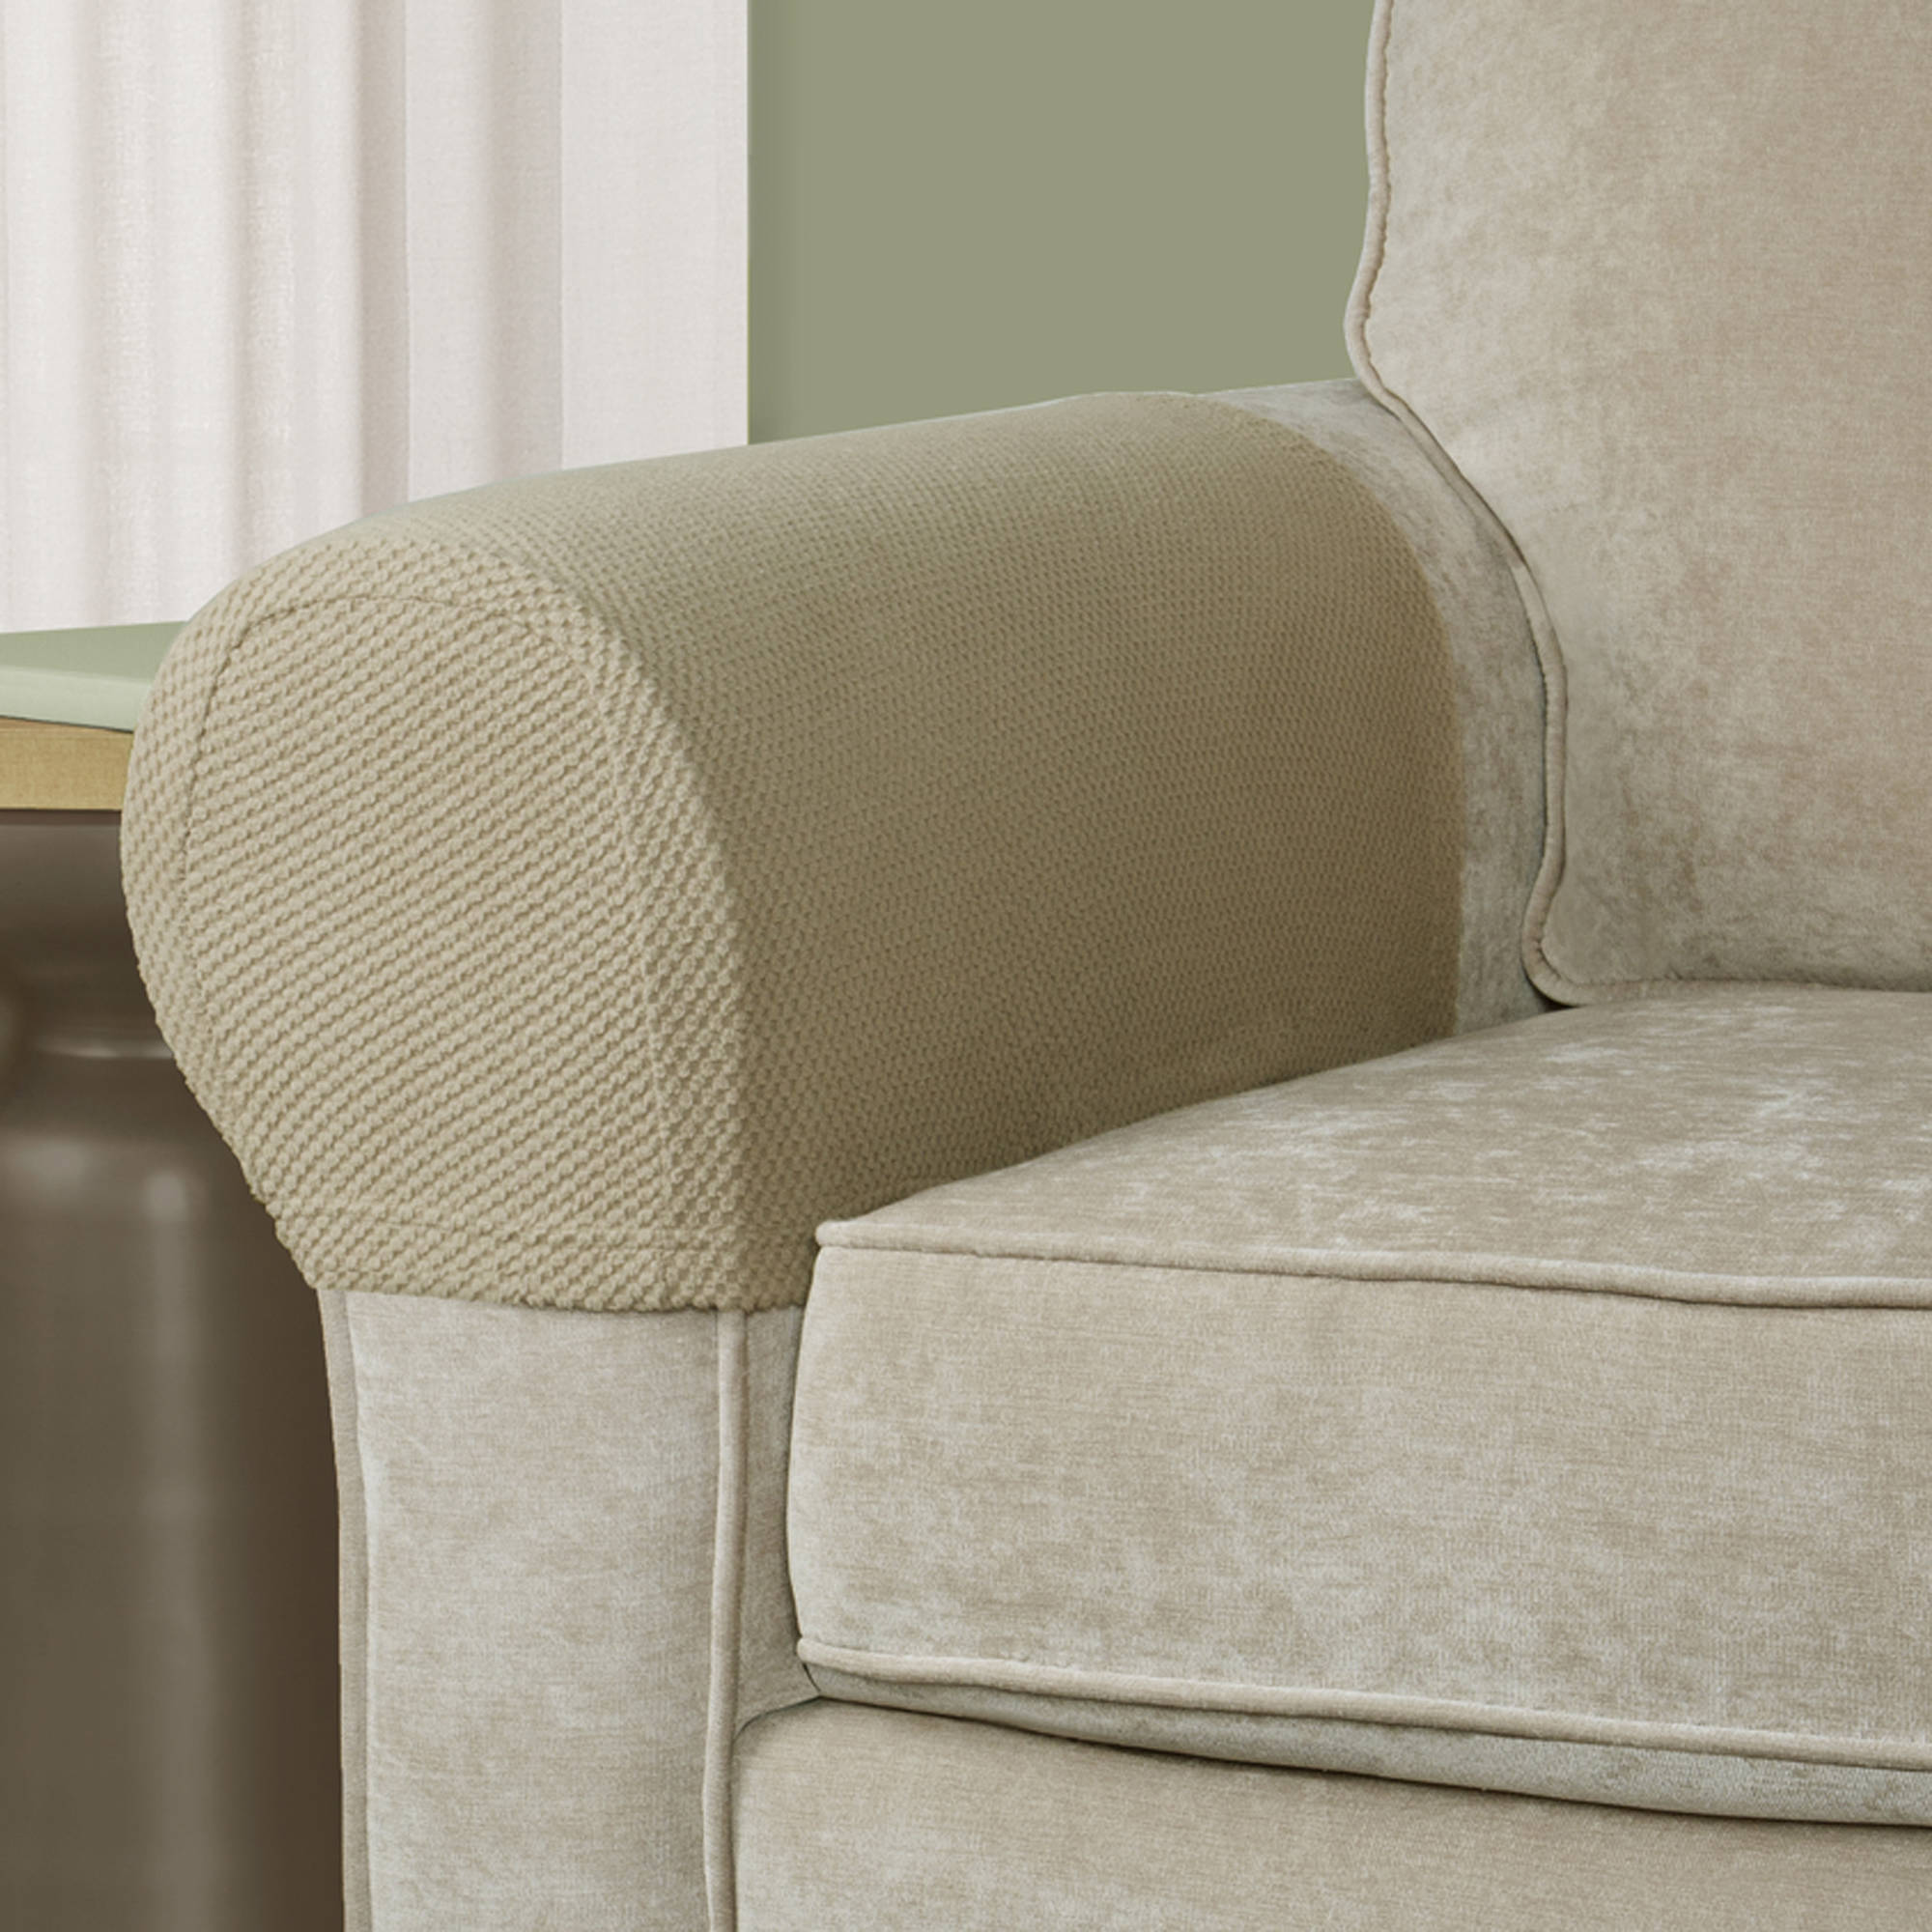 Mainstays Pixel��Stretch Fabric Furniture Armrest Covers